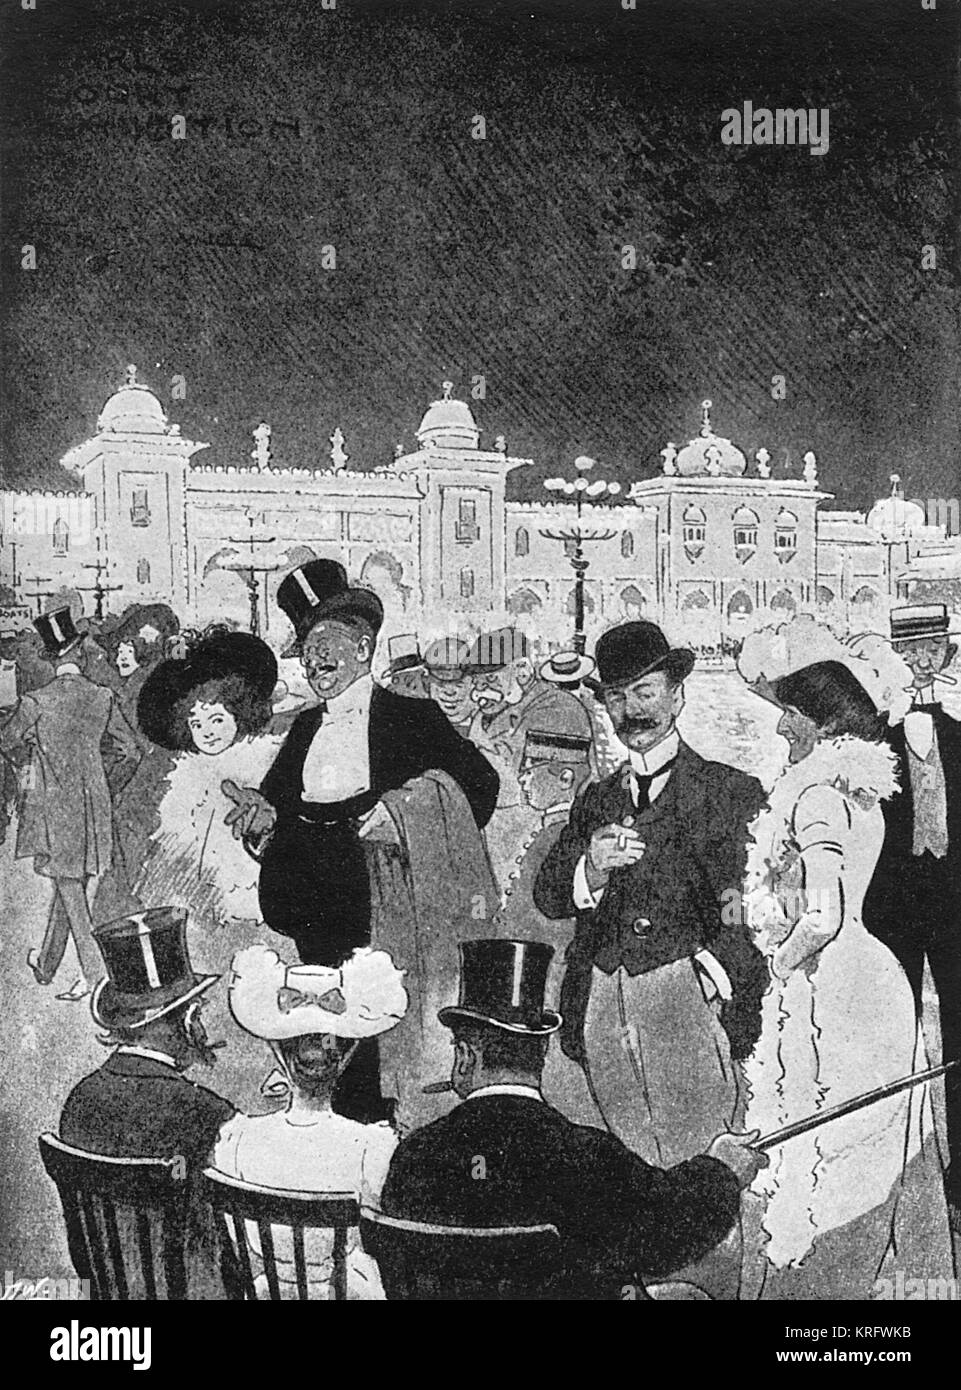 The Welcome Club at Earl's Court, a feature of London amusements in the late 19th and early 20th century, where - Stock Image